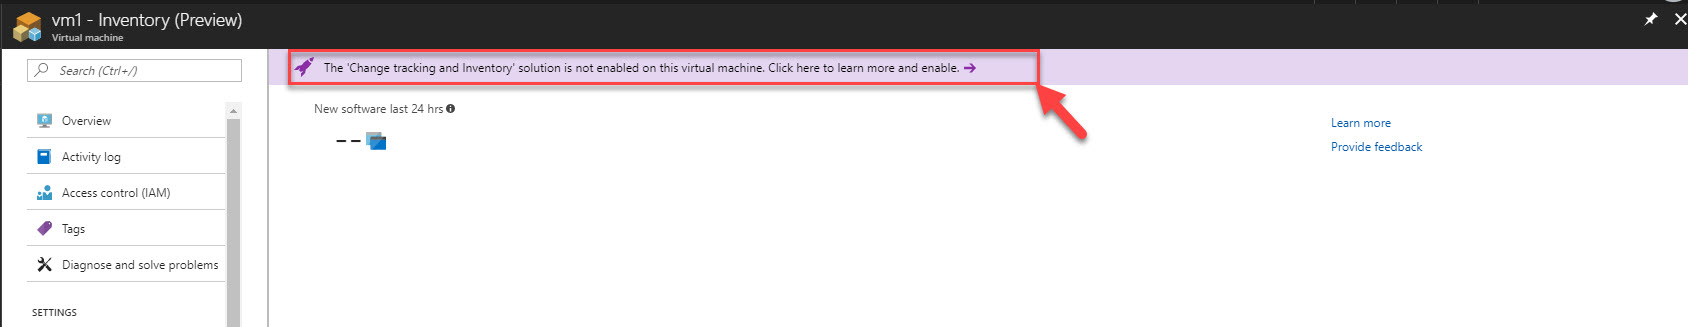 Introducing change tracking and inventory features for Azure VM